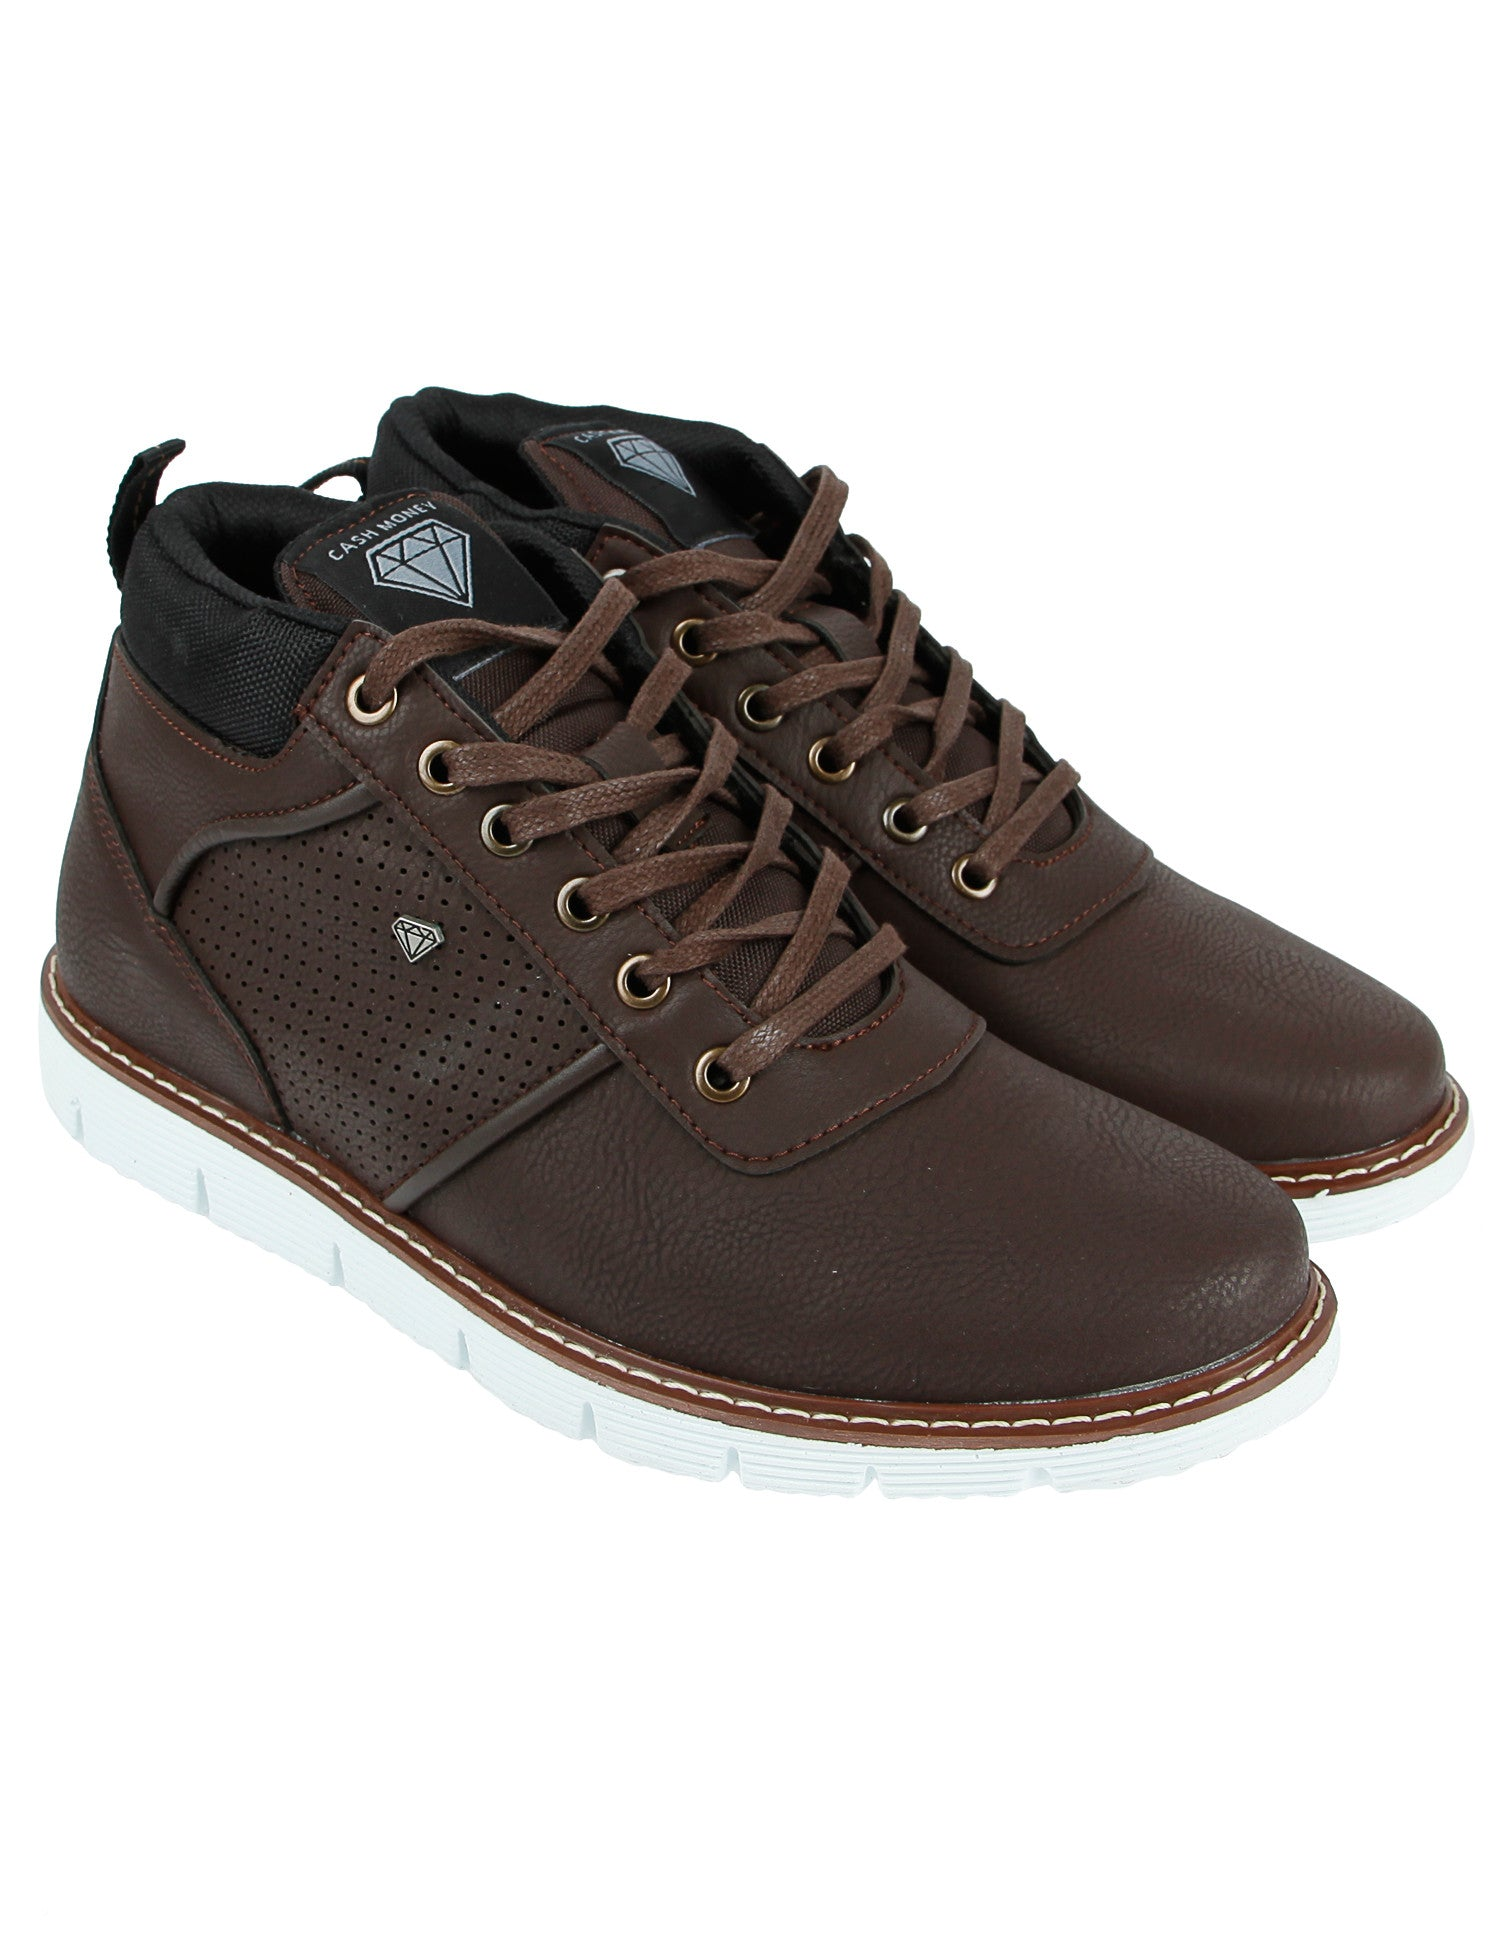 Cash Money Sneakers CMS69 Survival Choco Brown